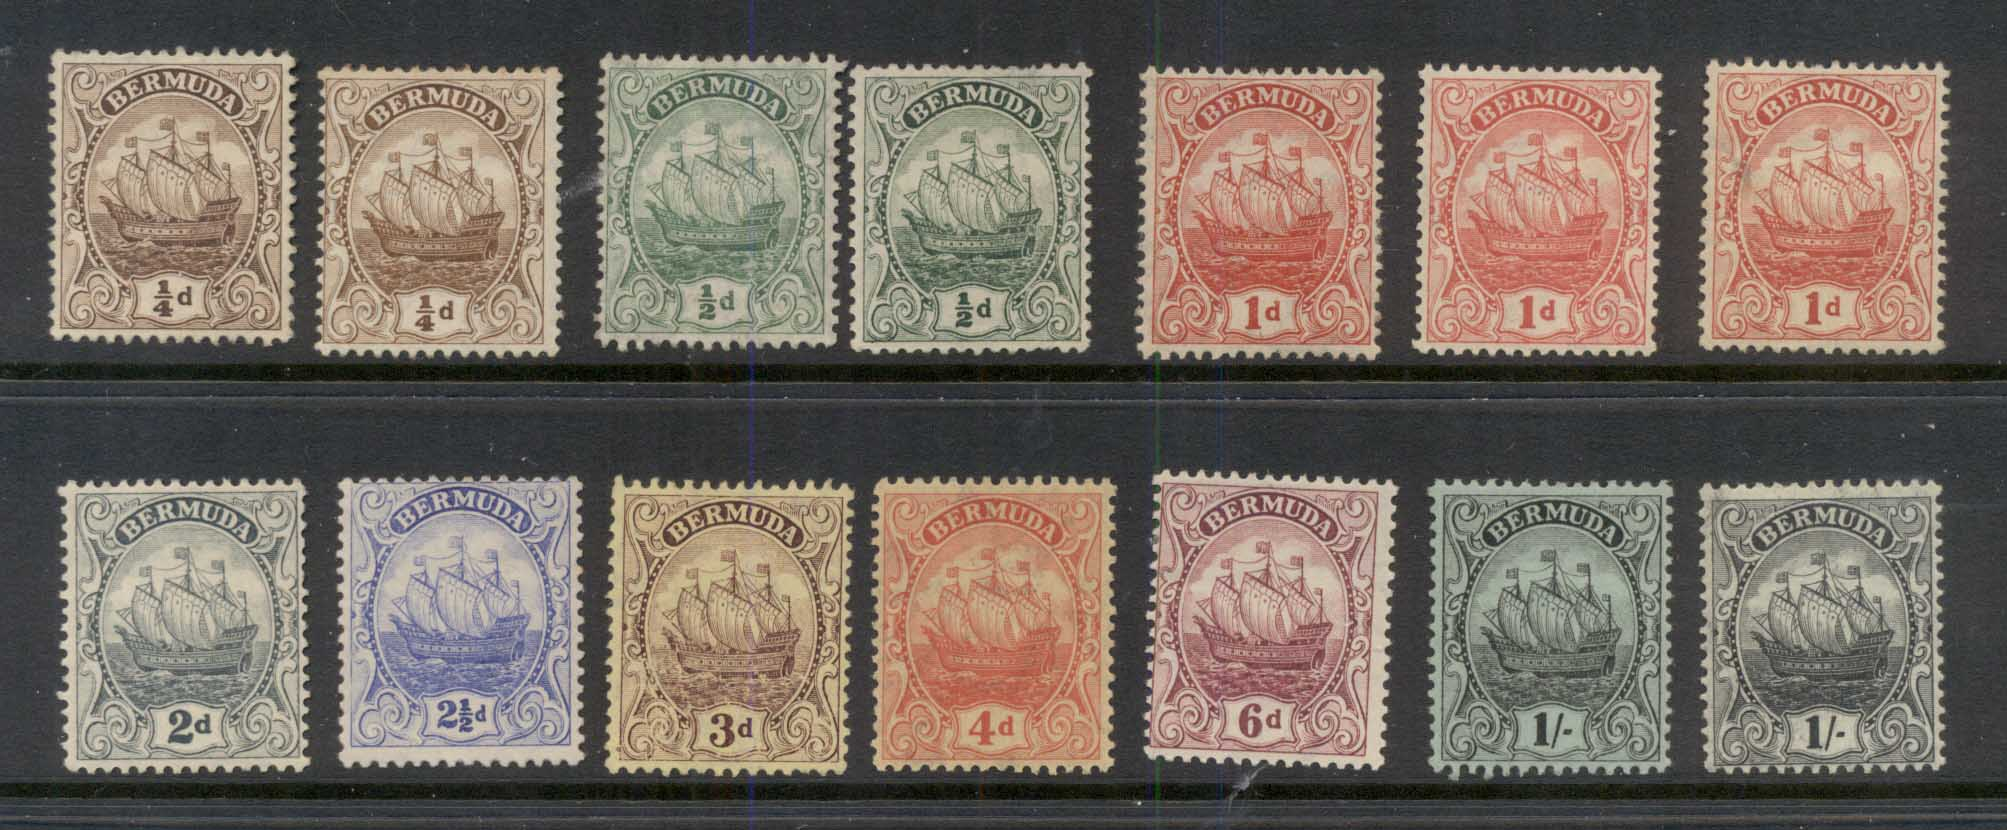 Bermuda 1910-25 Ship, Carvel Wmk. Multiple Crown CA Asst plus shades to 1/- most fine, some MNG, MLH